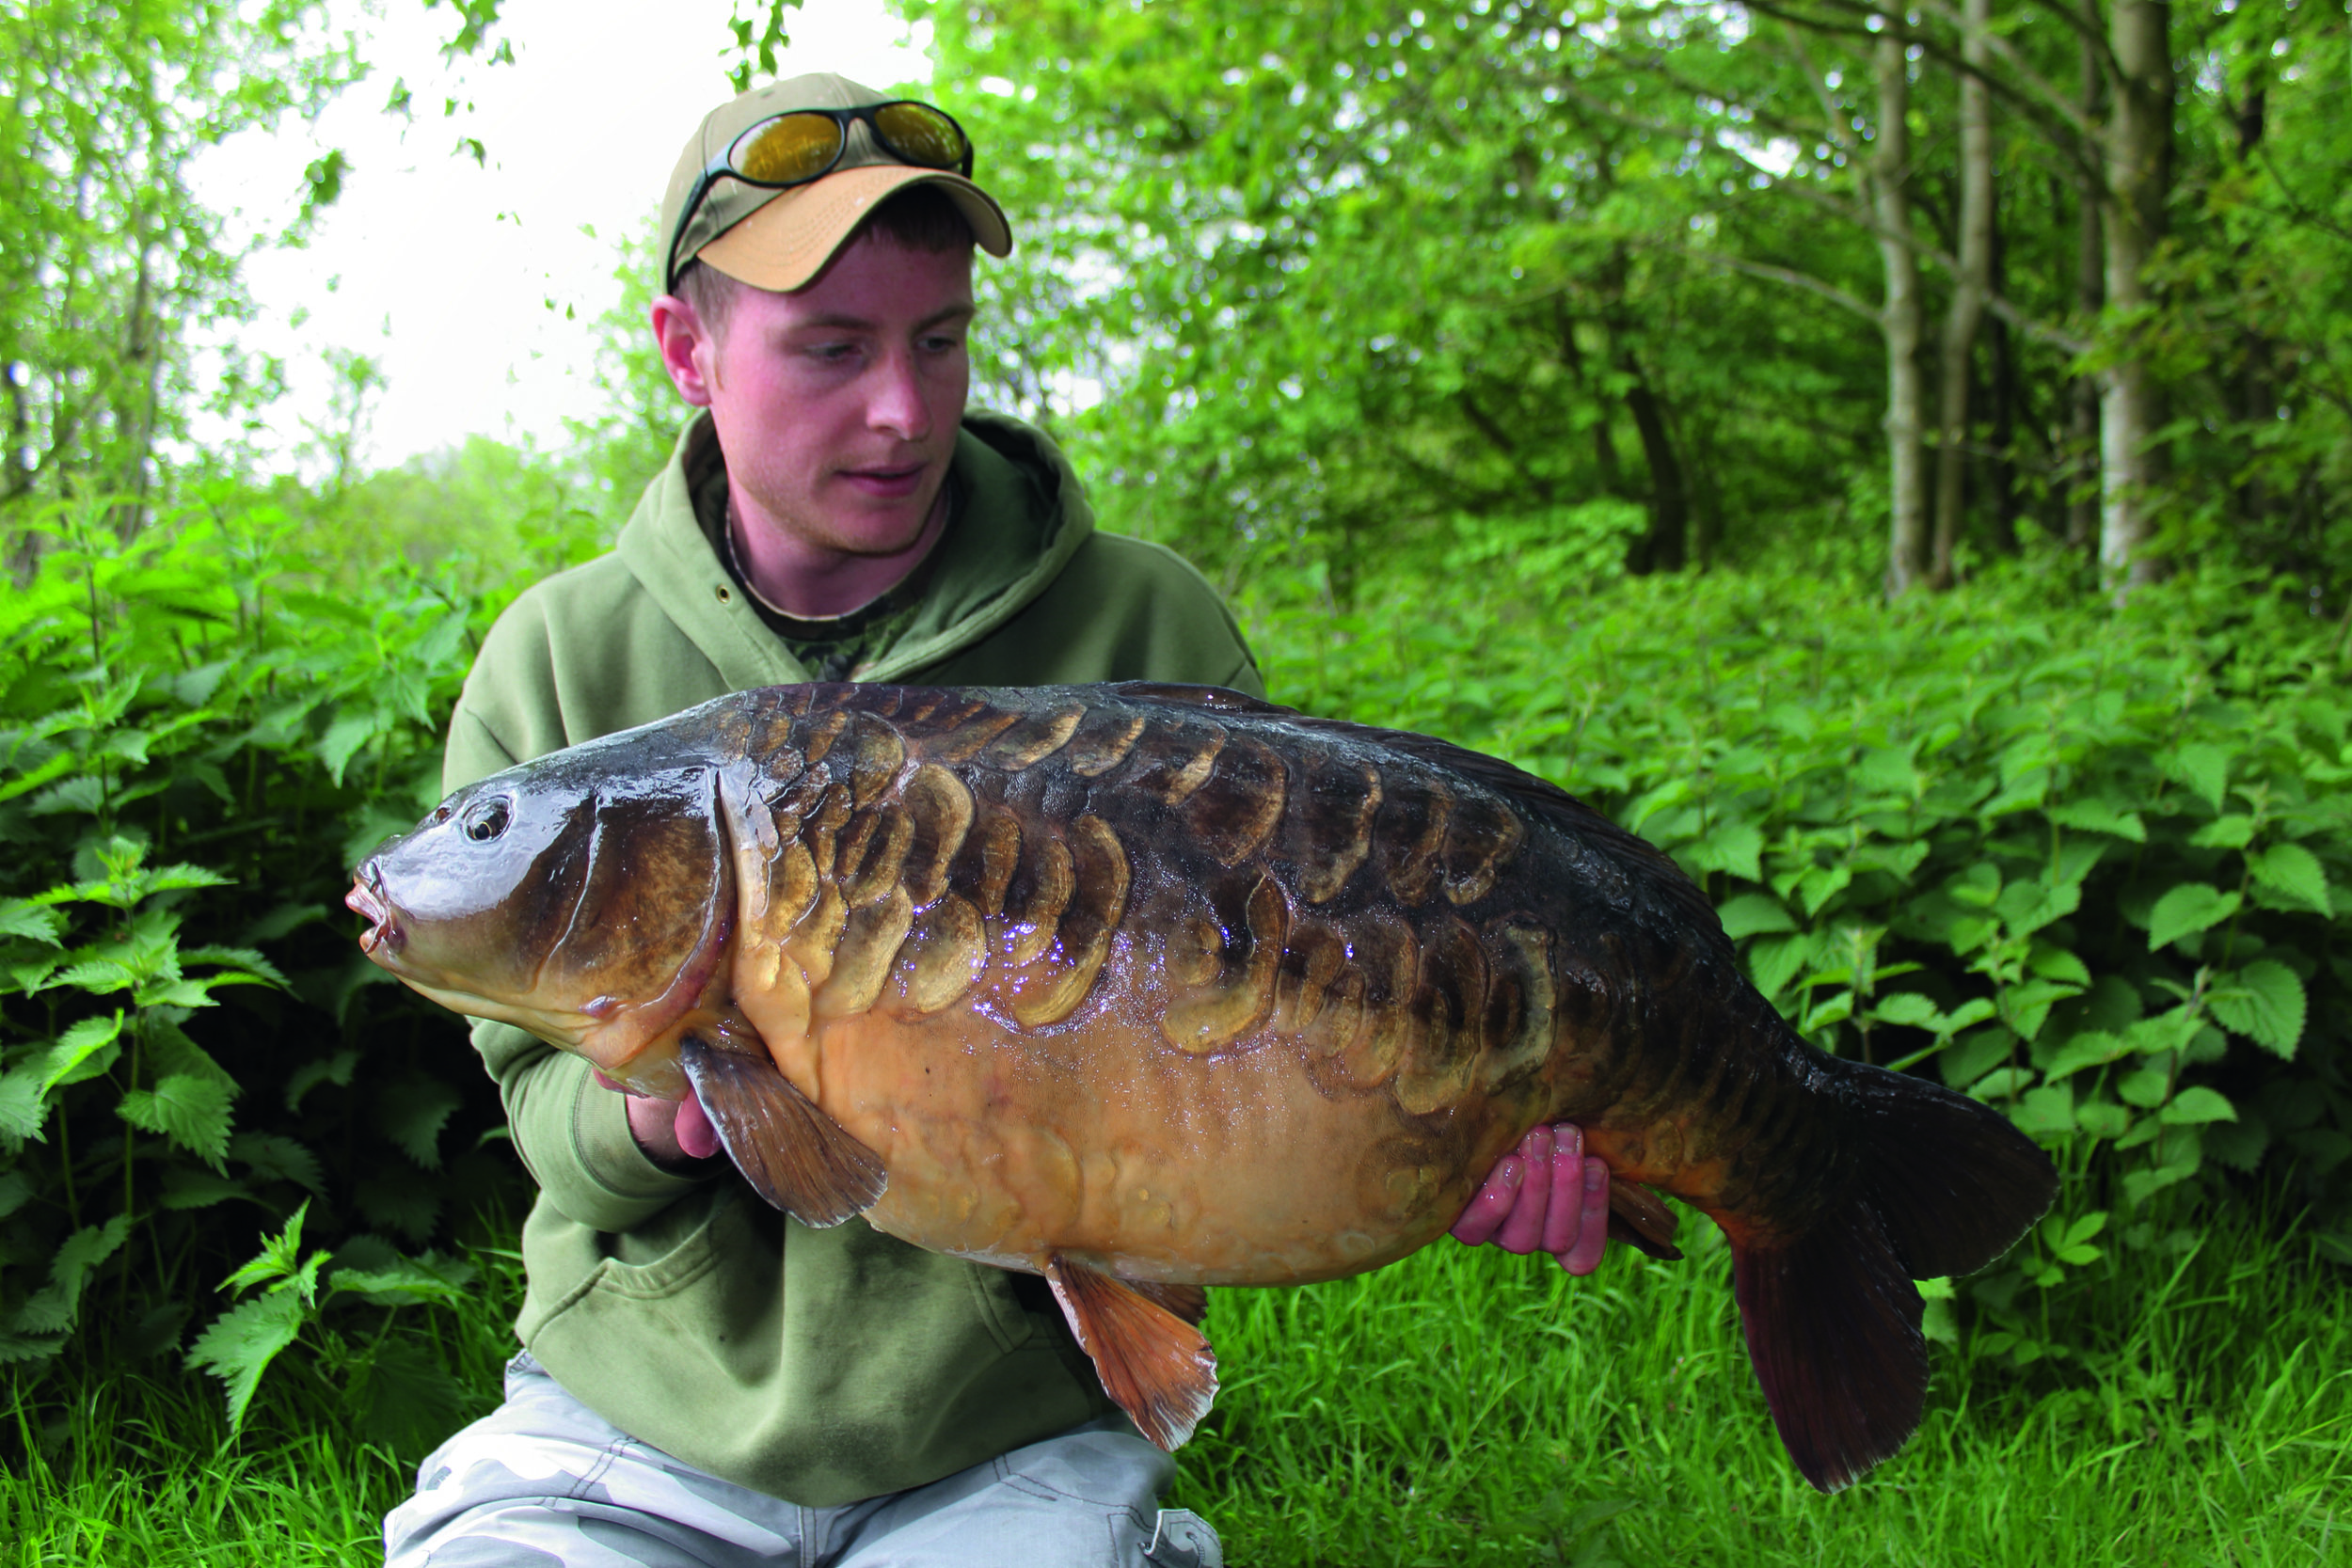 Since joining Wyre Lake in 2014, I had managed to catch some very nice fish, including Trigger at 27lb 12oz.